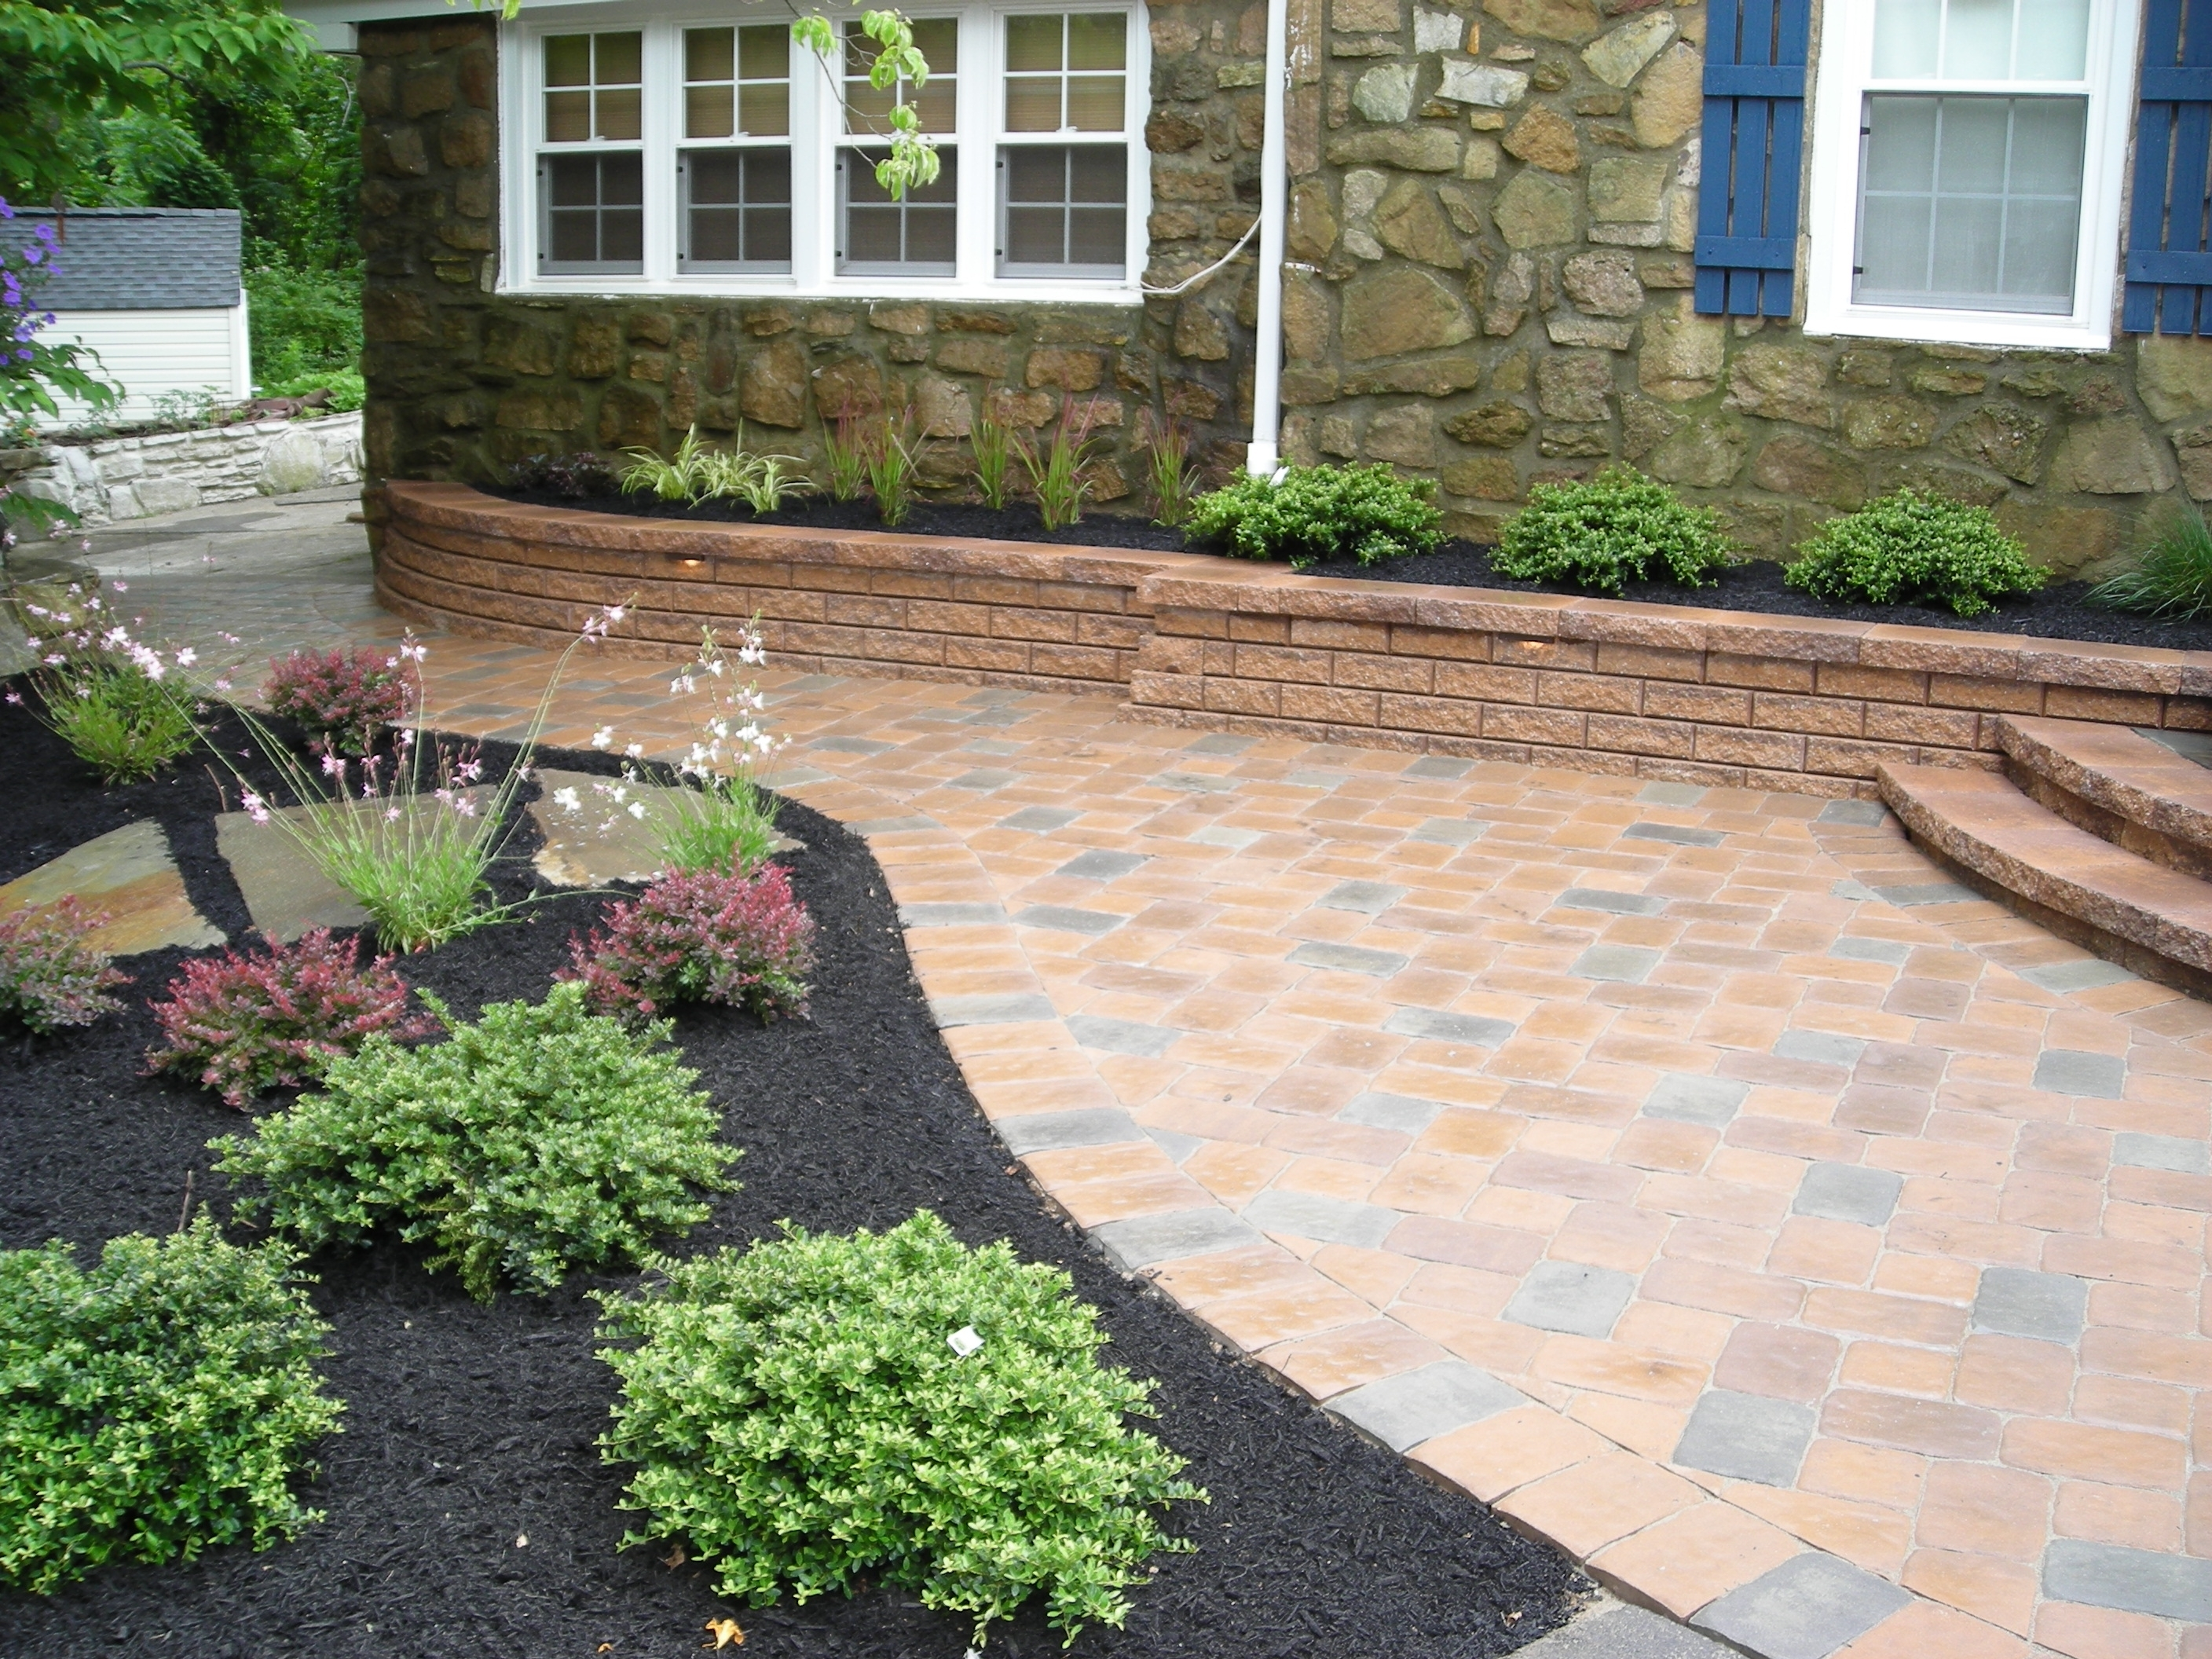 Paving ideas for small back gardens garden design for Paved garden designs ideas